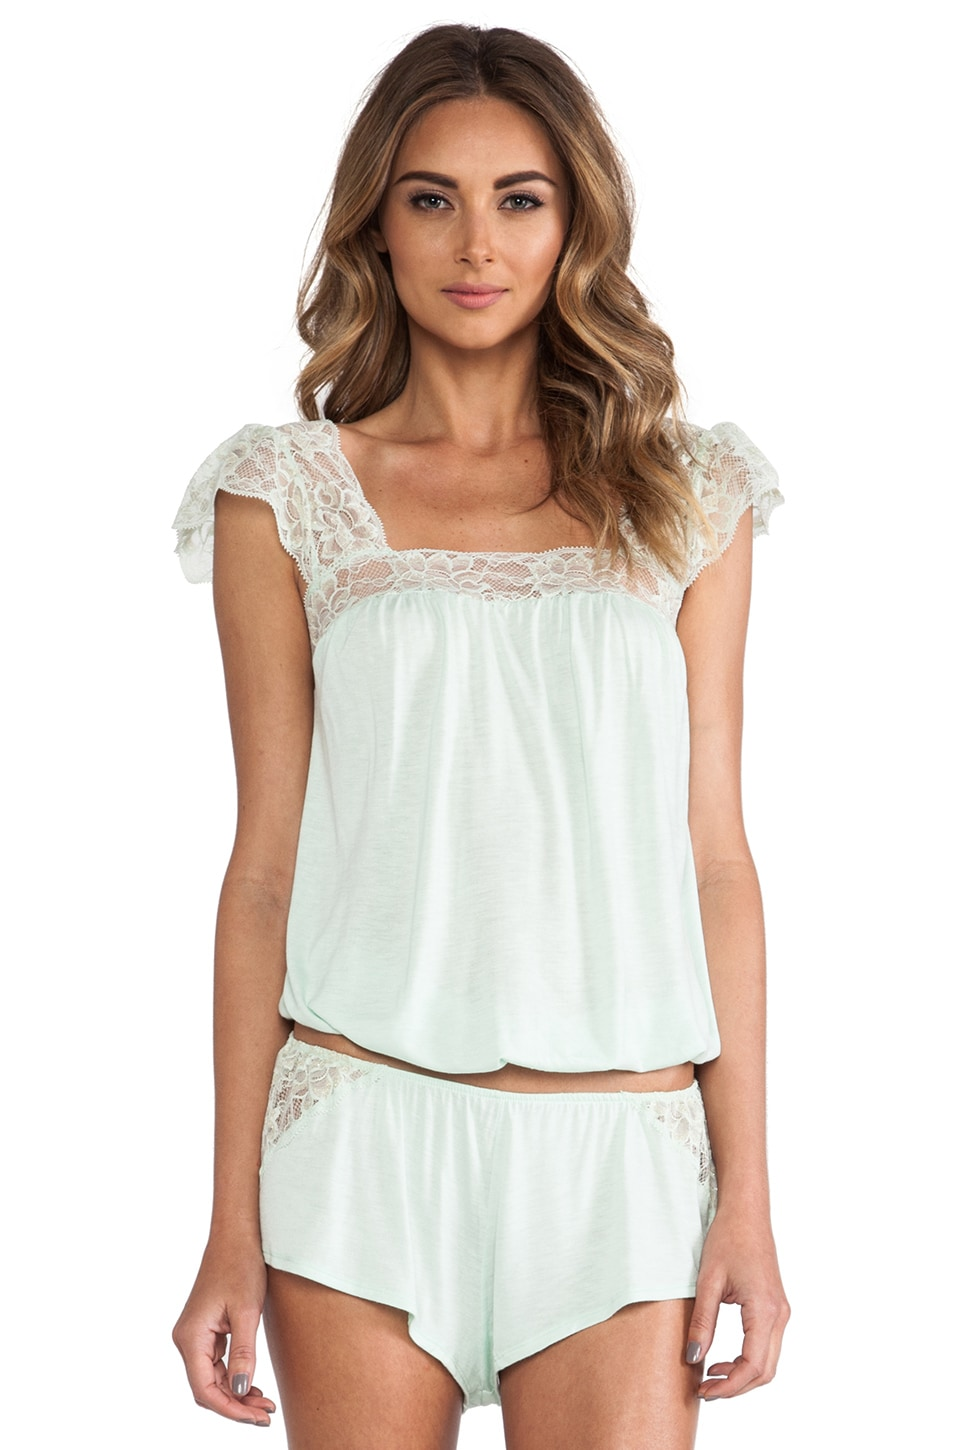 eberjey Golden Girl Flutter Sleeve Cami in Pistachio